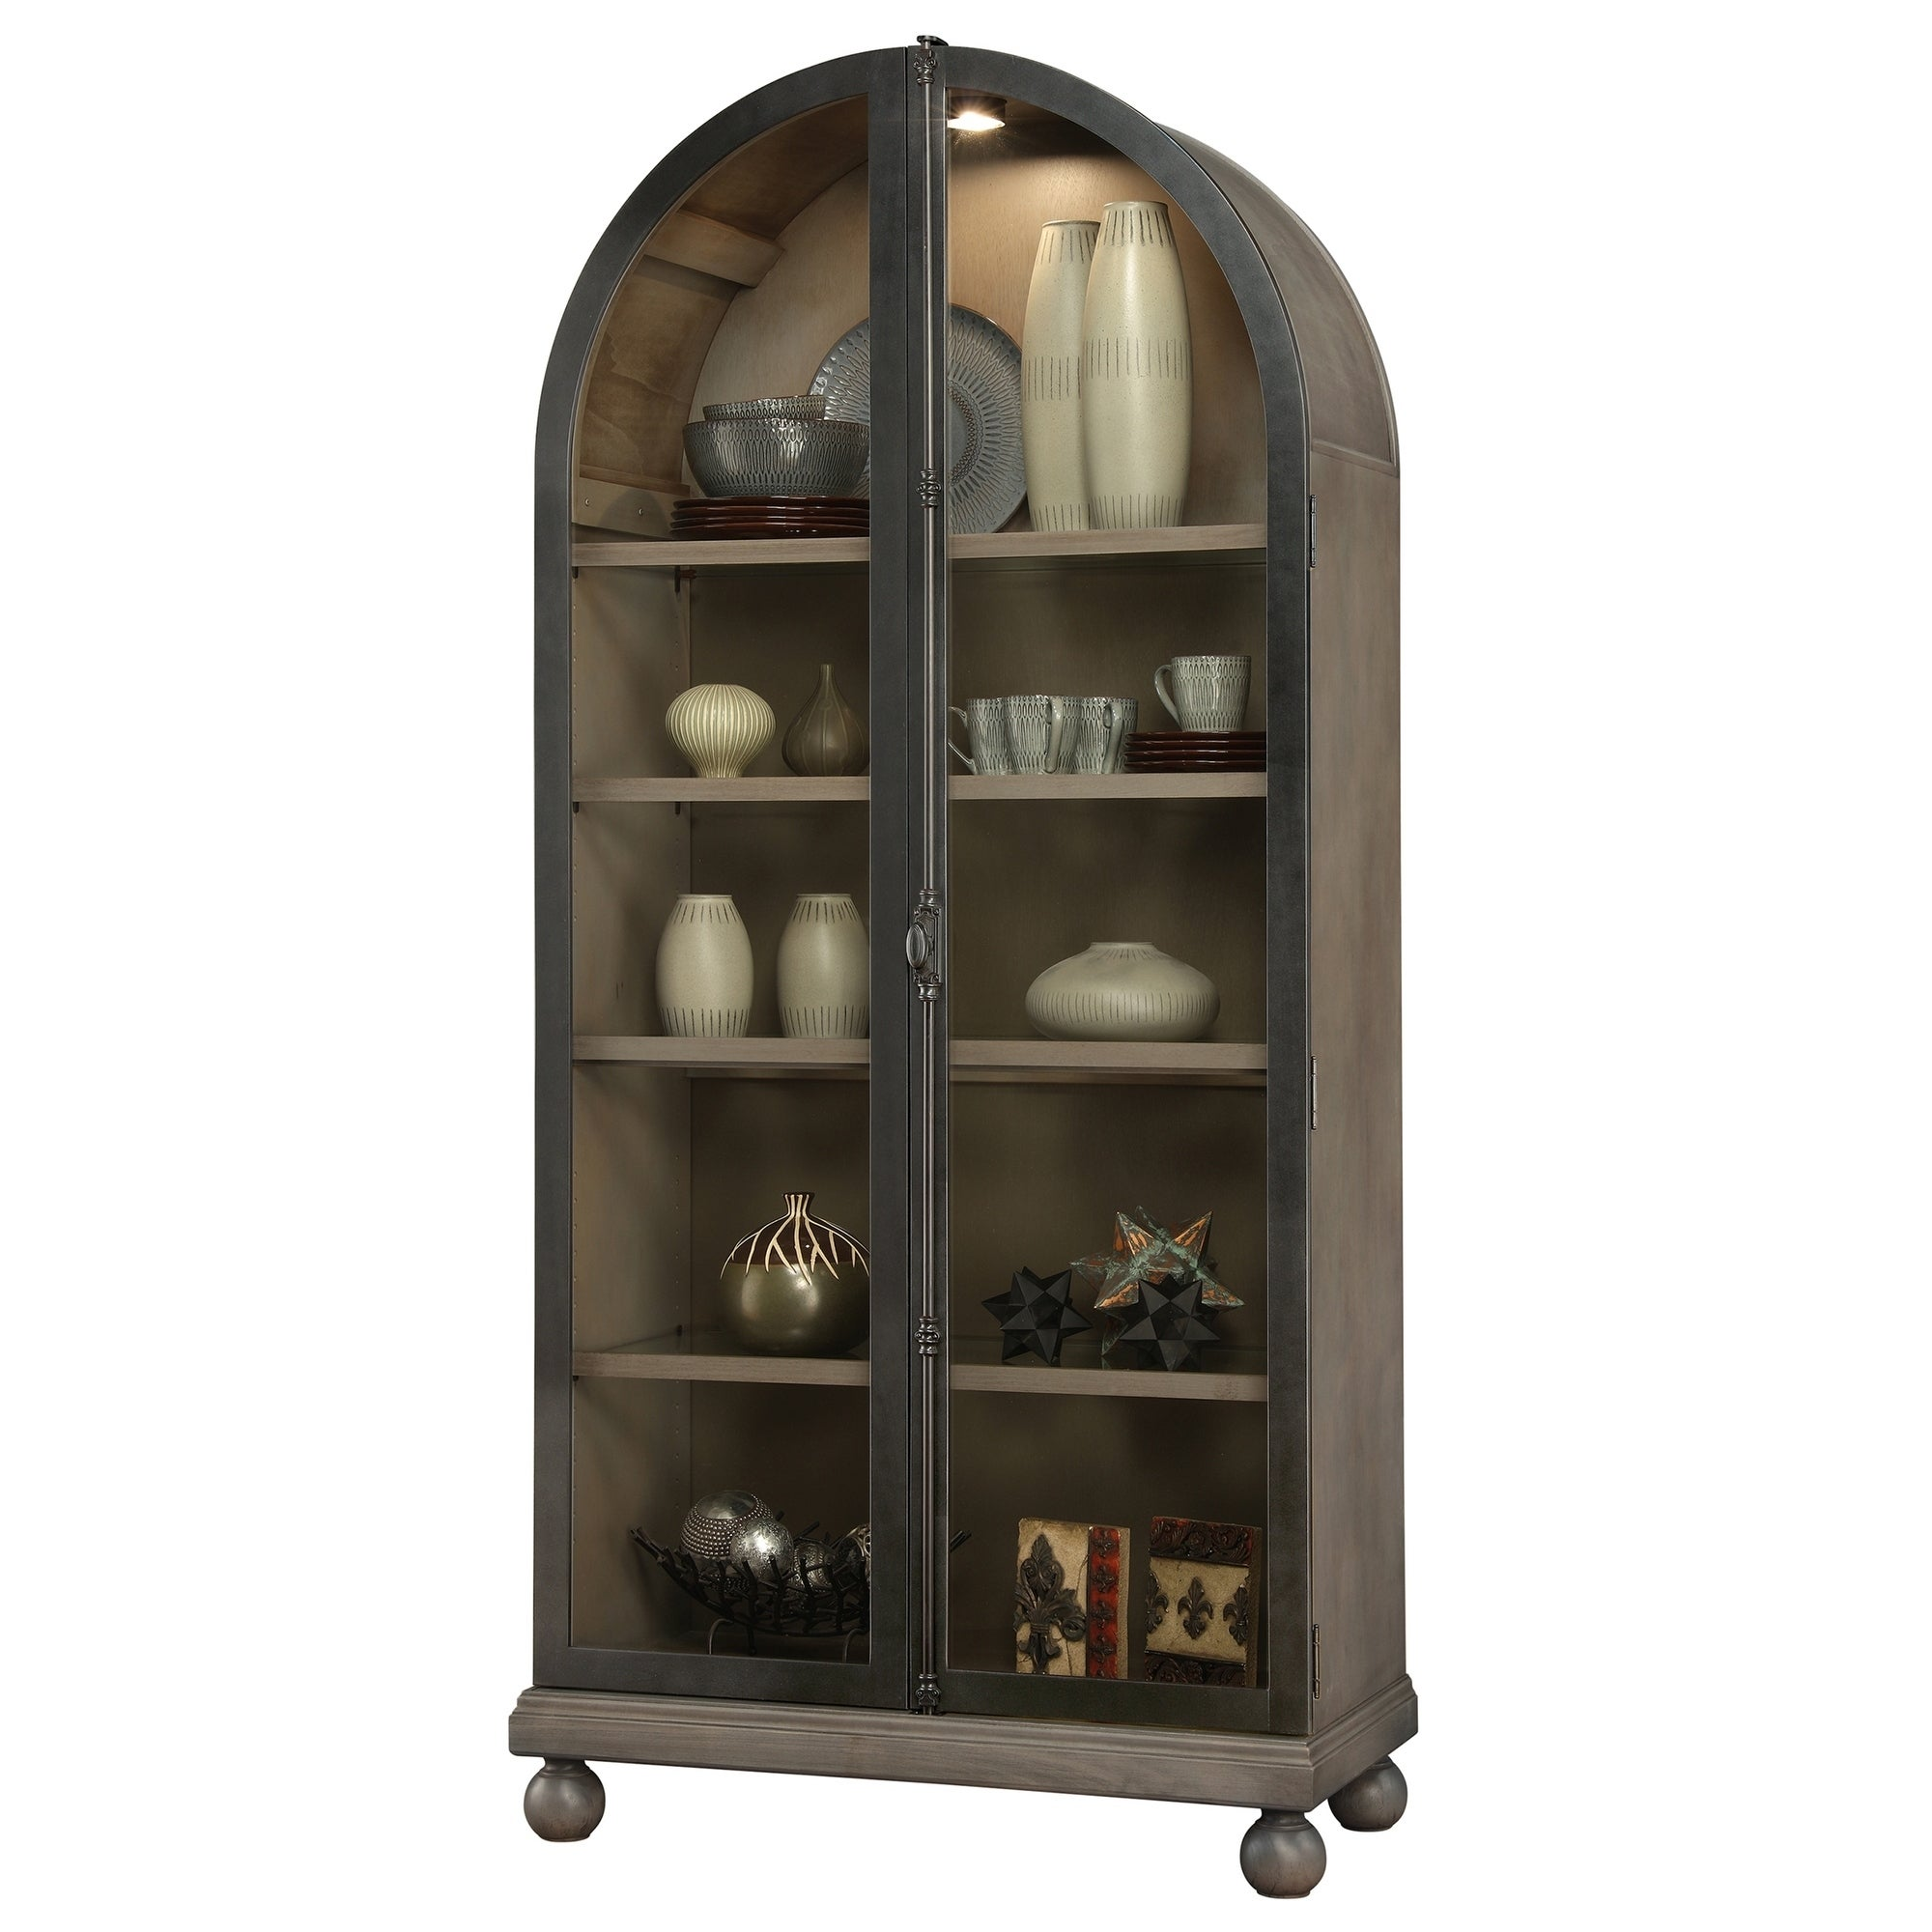 Howard Miller Naomi Ii Rich Aged Hardwood Arched Top Curio Cabinet 84 Inches High X 39 5 Inches Wide X 18 Inches Deep Overstock 23449405